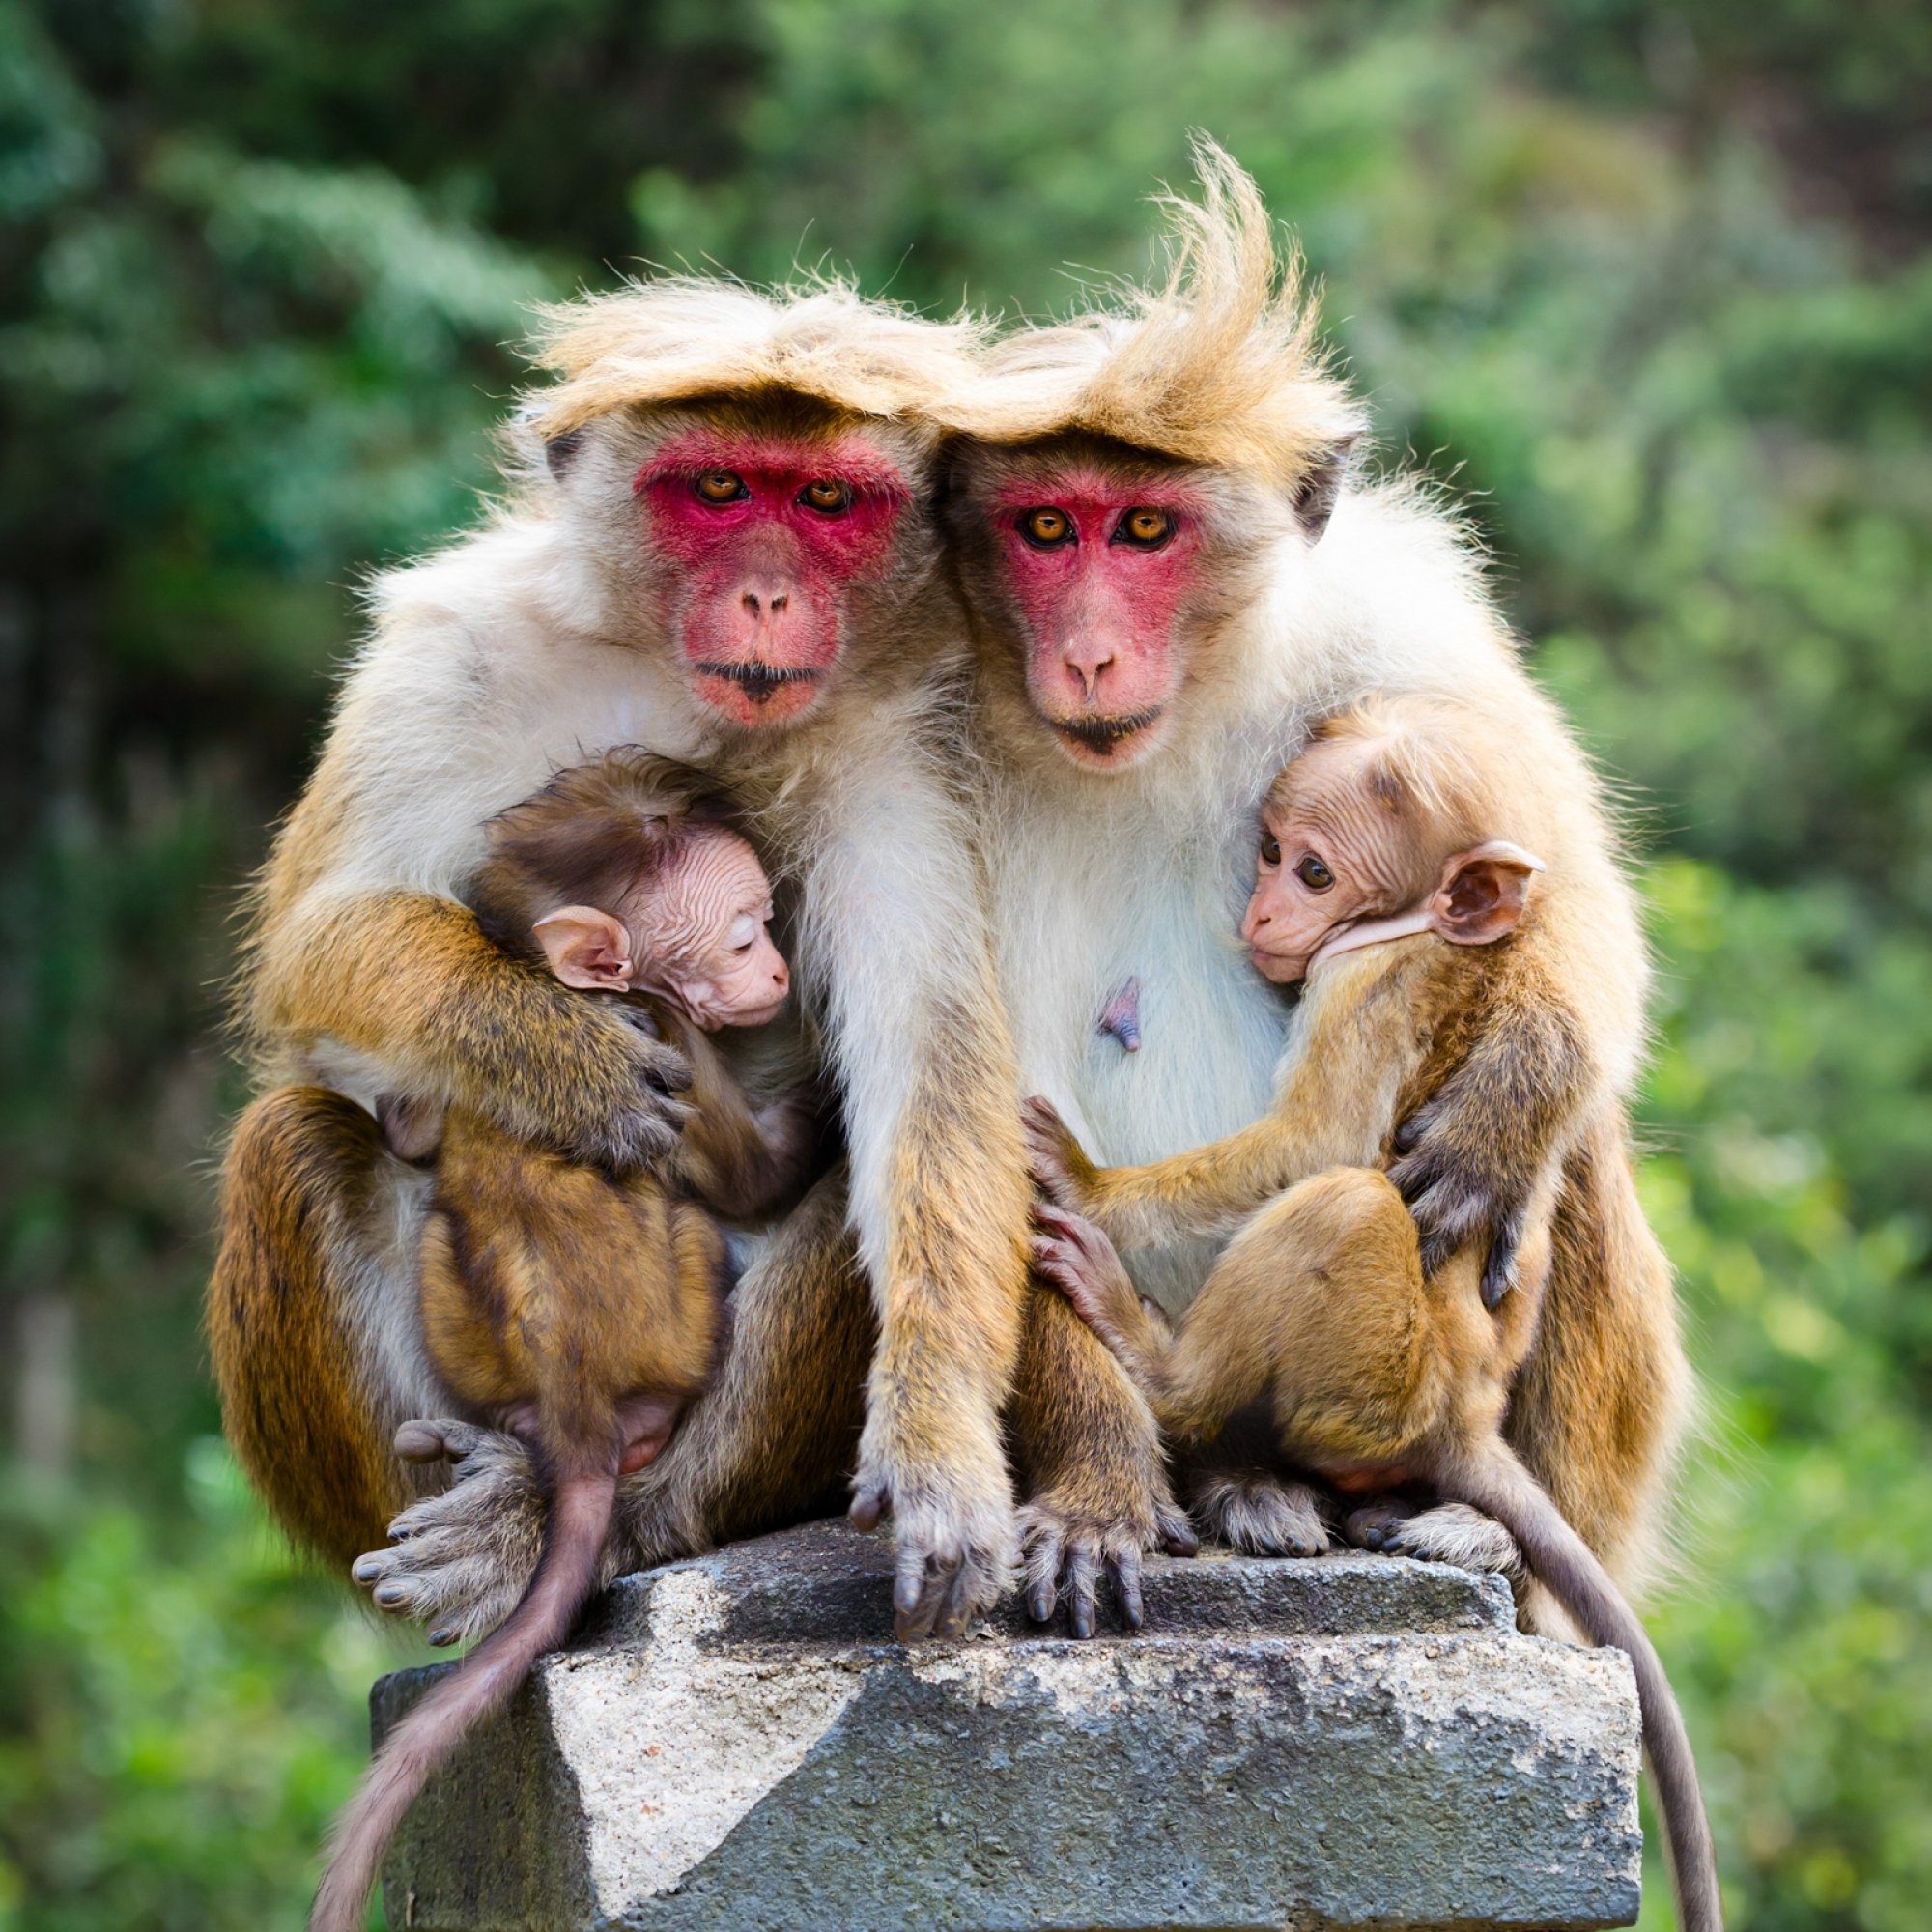 https://bubo.sk/uploads/galleries/7543/sri-lanka-monkey-family-with-two-babies-red-faces-macaque-macaca-fuscata.jpg